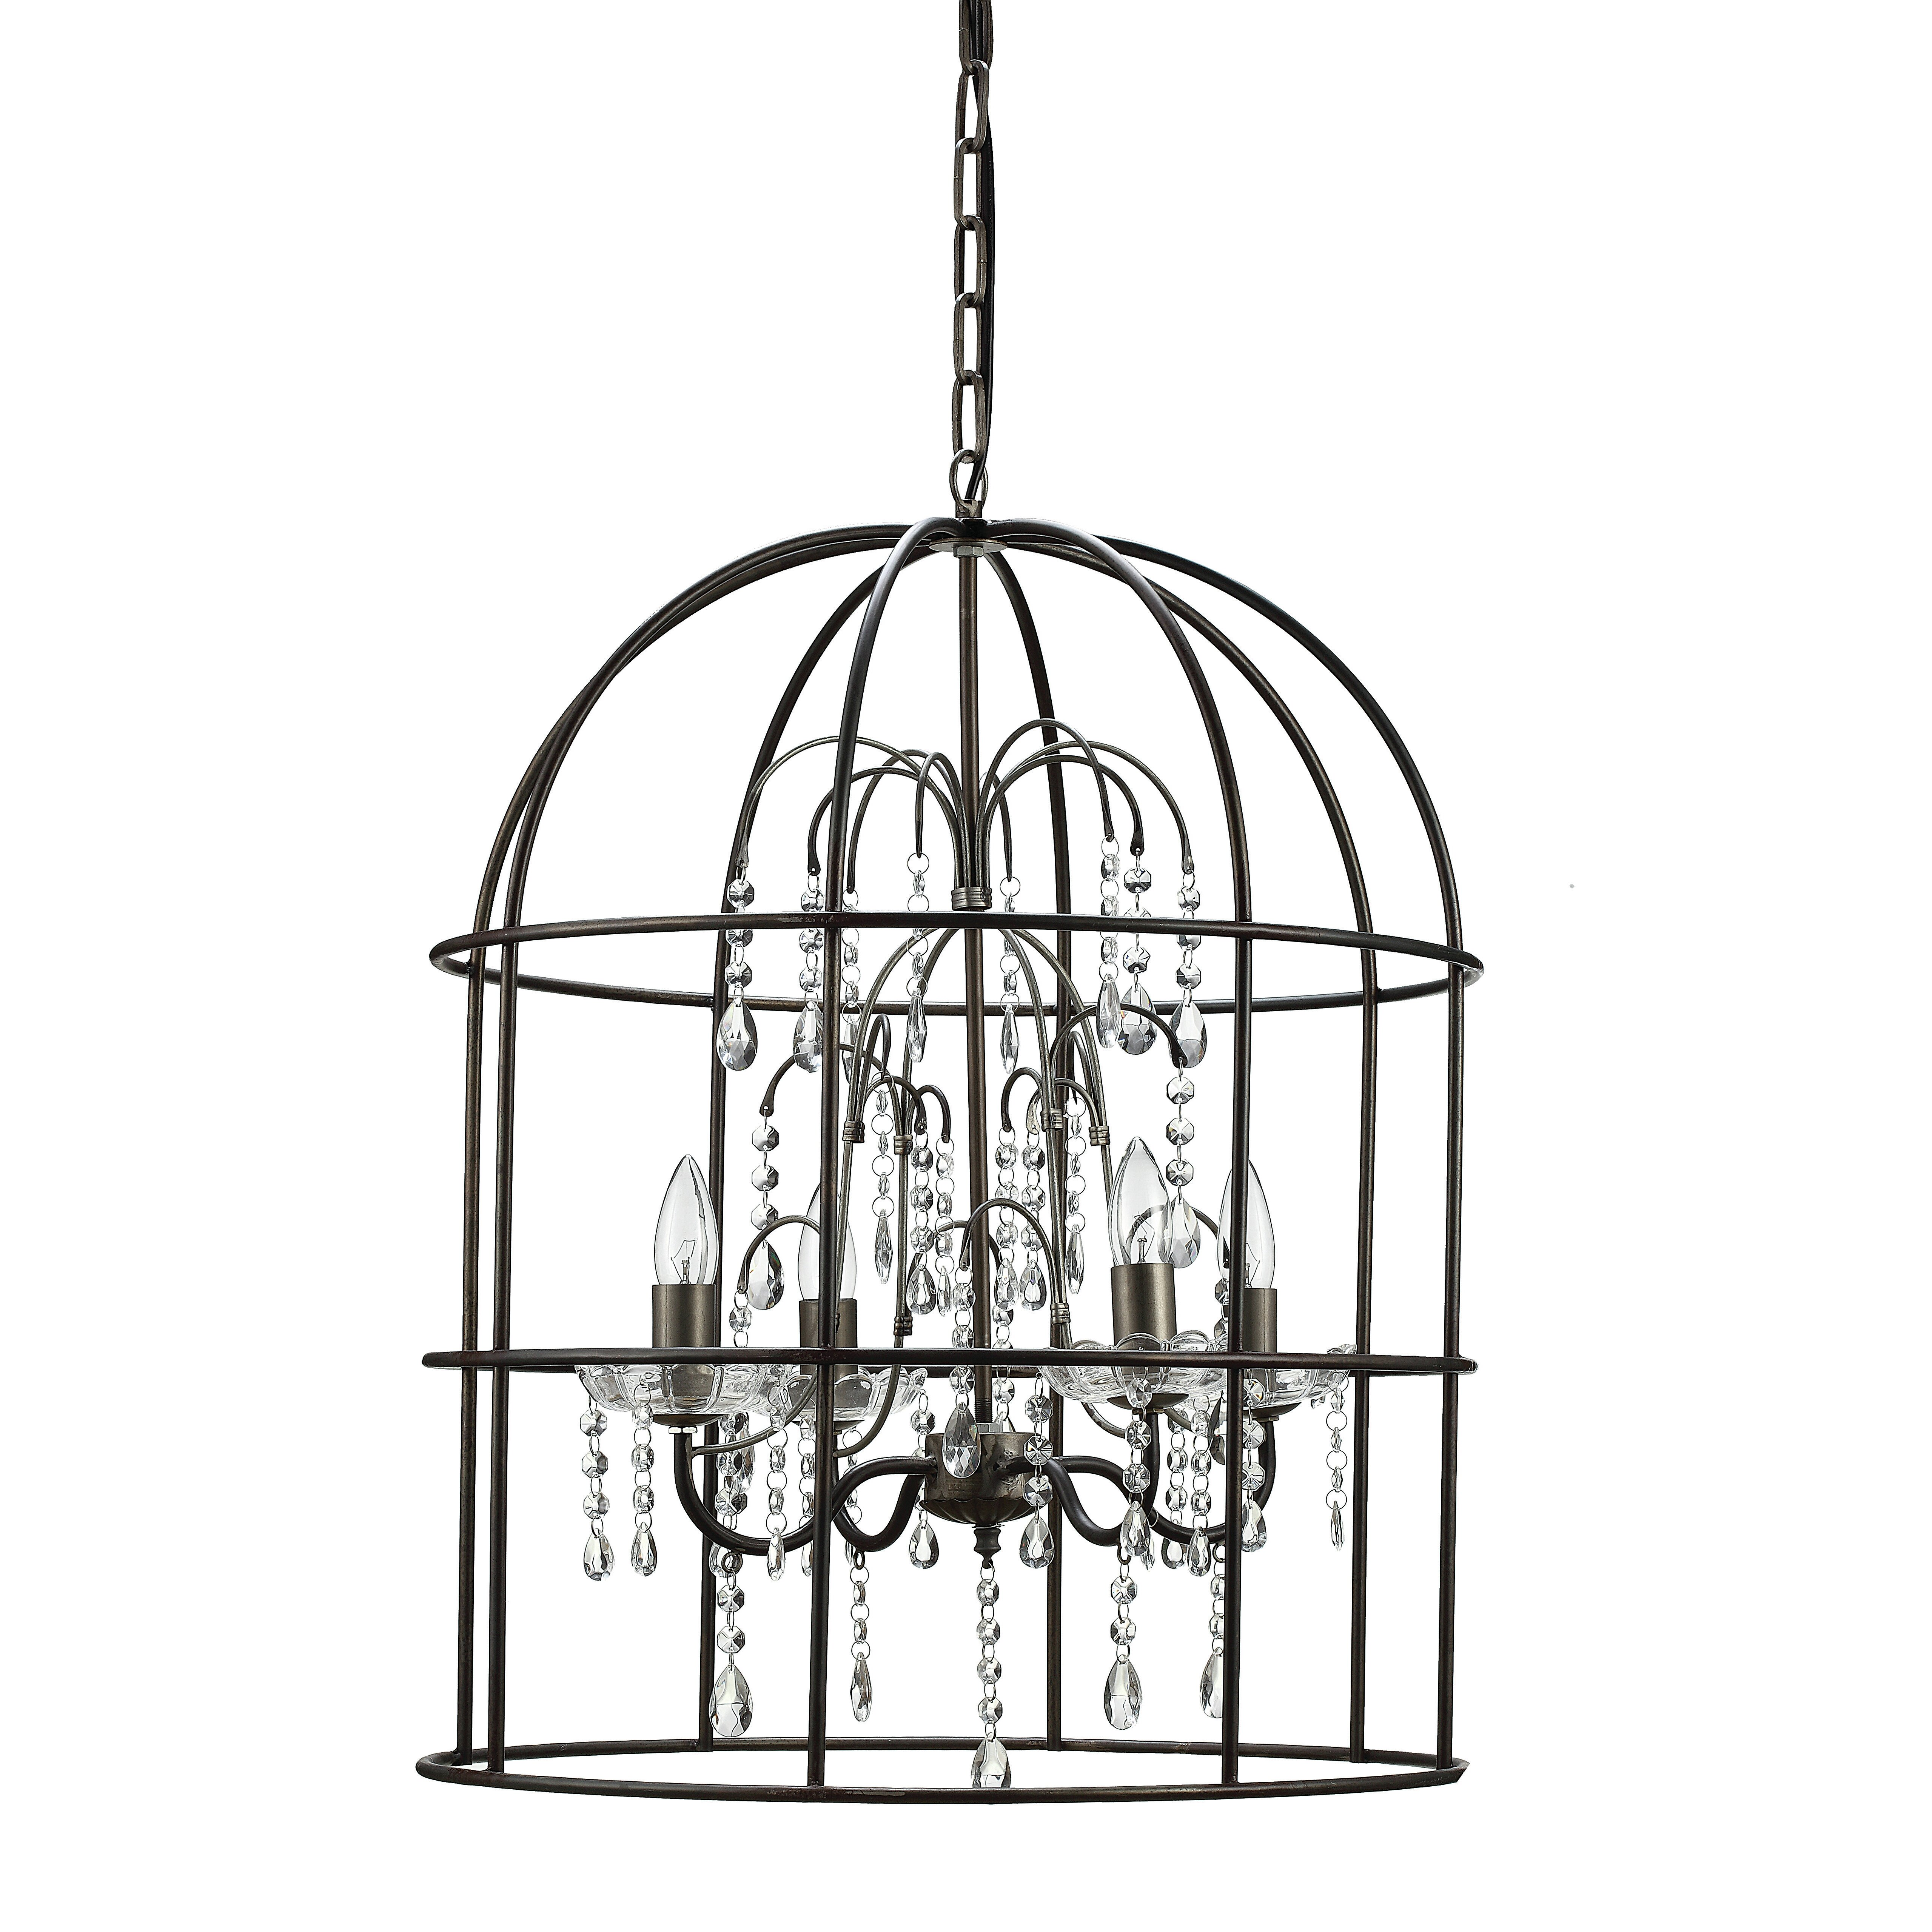 Creative Co Op Turn Of The Century Metal Birdcage 4 Light Chandelier DA1637 XRL1514 further Metal Wall Decore Bronze Large Metal Wall Metal Flower Wall Decor Target together with Office Wall Decor Motivational Black And White Inspirational Print Modern Home Decor Office Wall Art Motivational Wall Decor A Year Wall Decor Bedroom as well Novogratz Bright Pop Platform Bed NMOM1077 in addition Avanity Positano Double Handle Bathroom Widespread Sink Faucet AVN1488. on heaters for living room